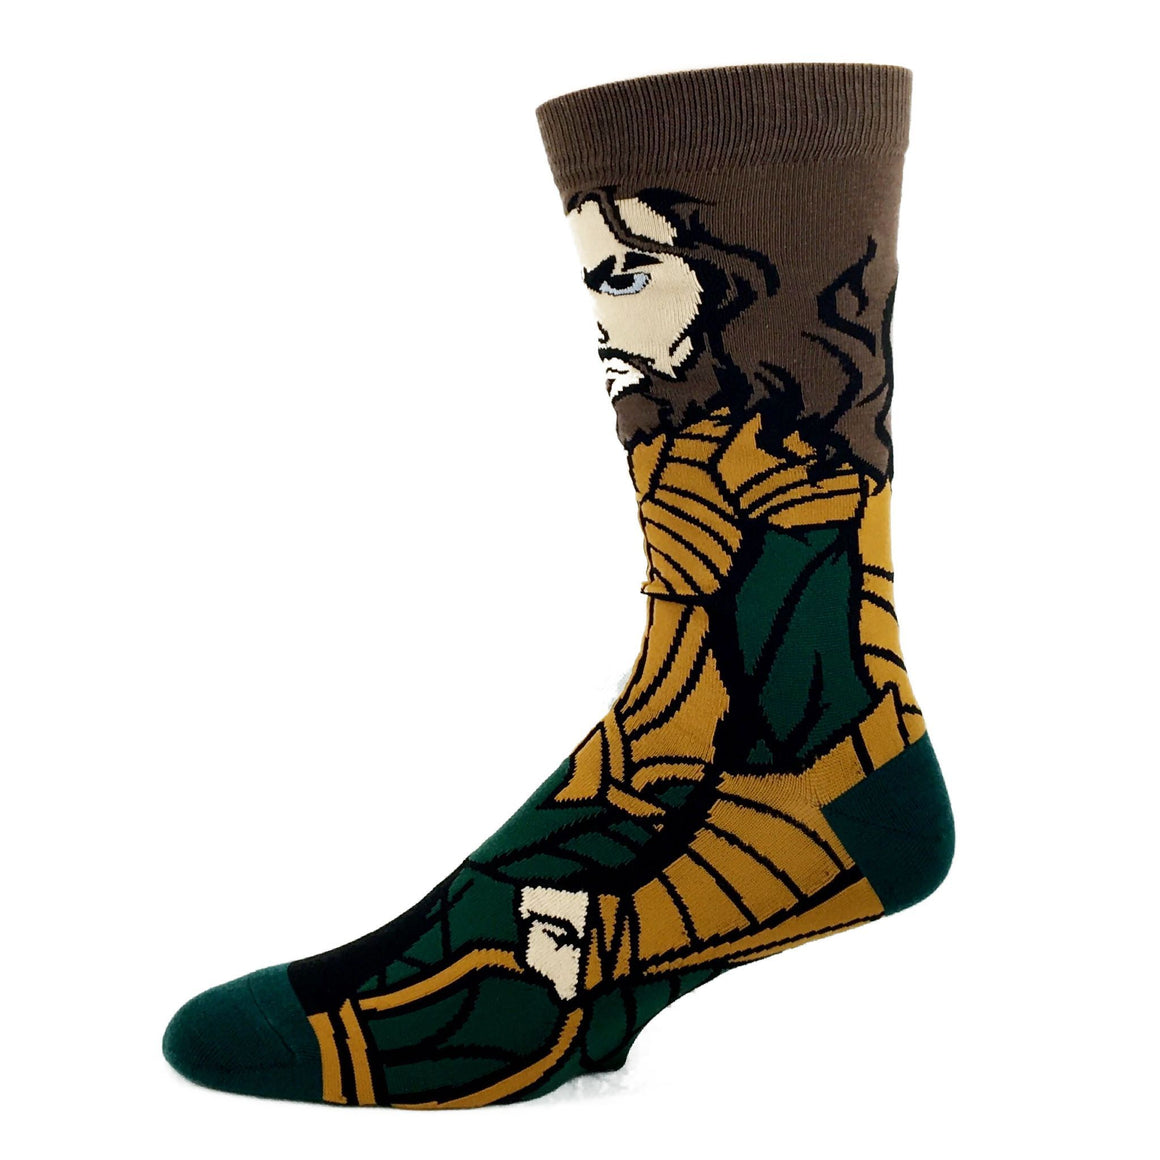 DC Comics Justice League Aquaman 360 Superhero Socks - The Sock Spot